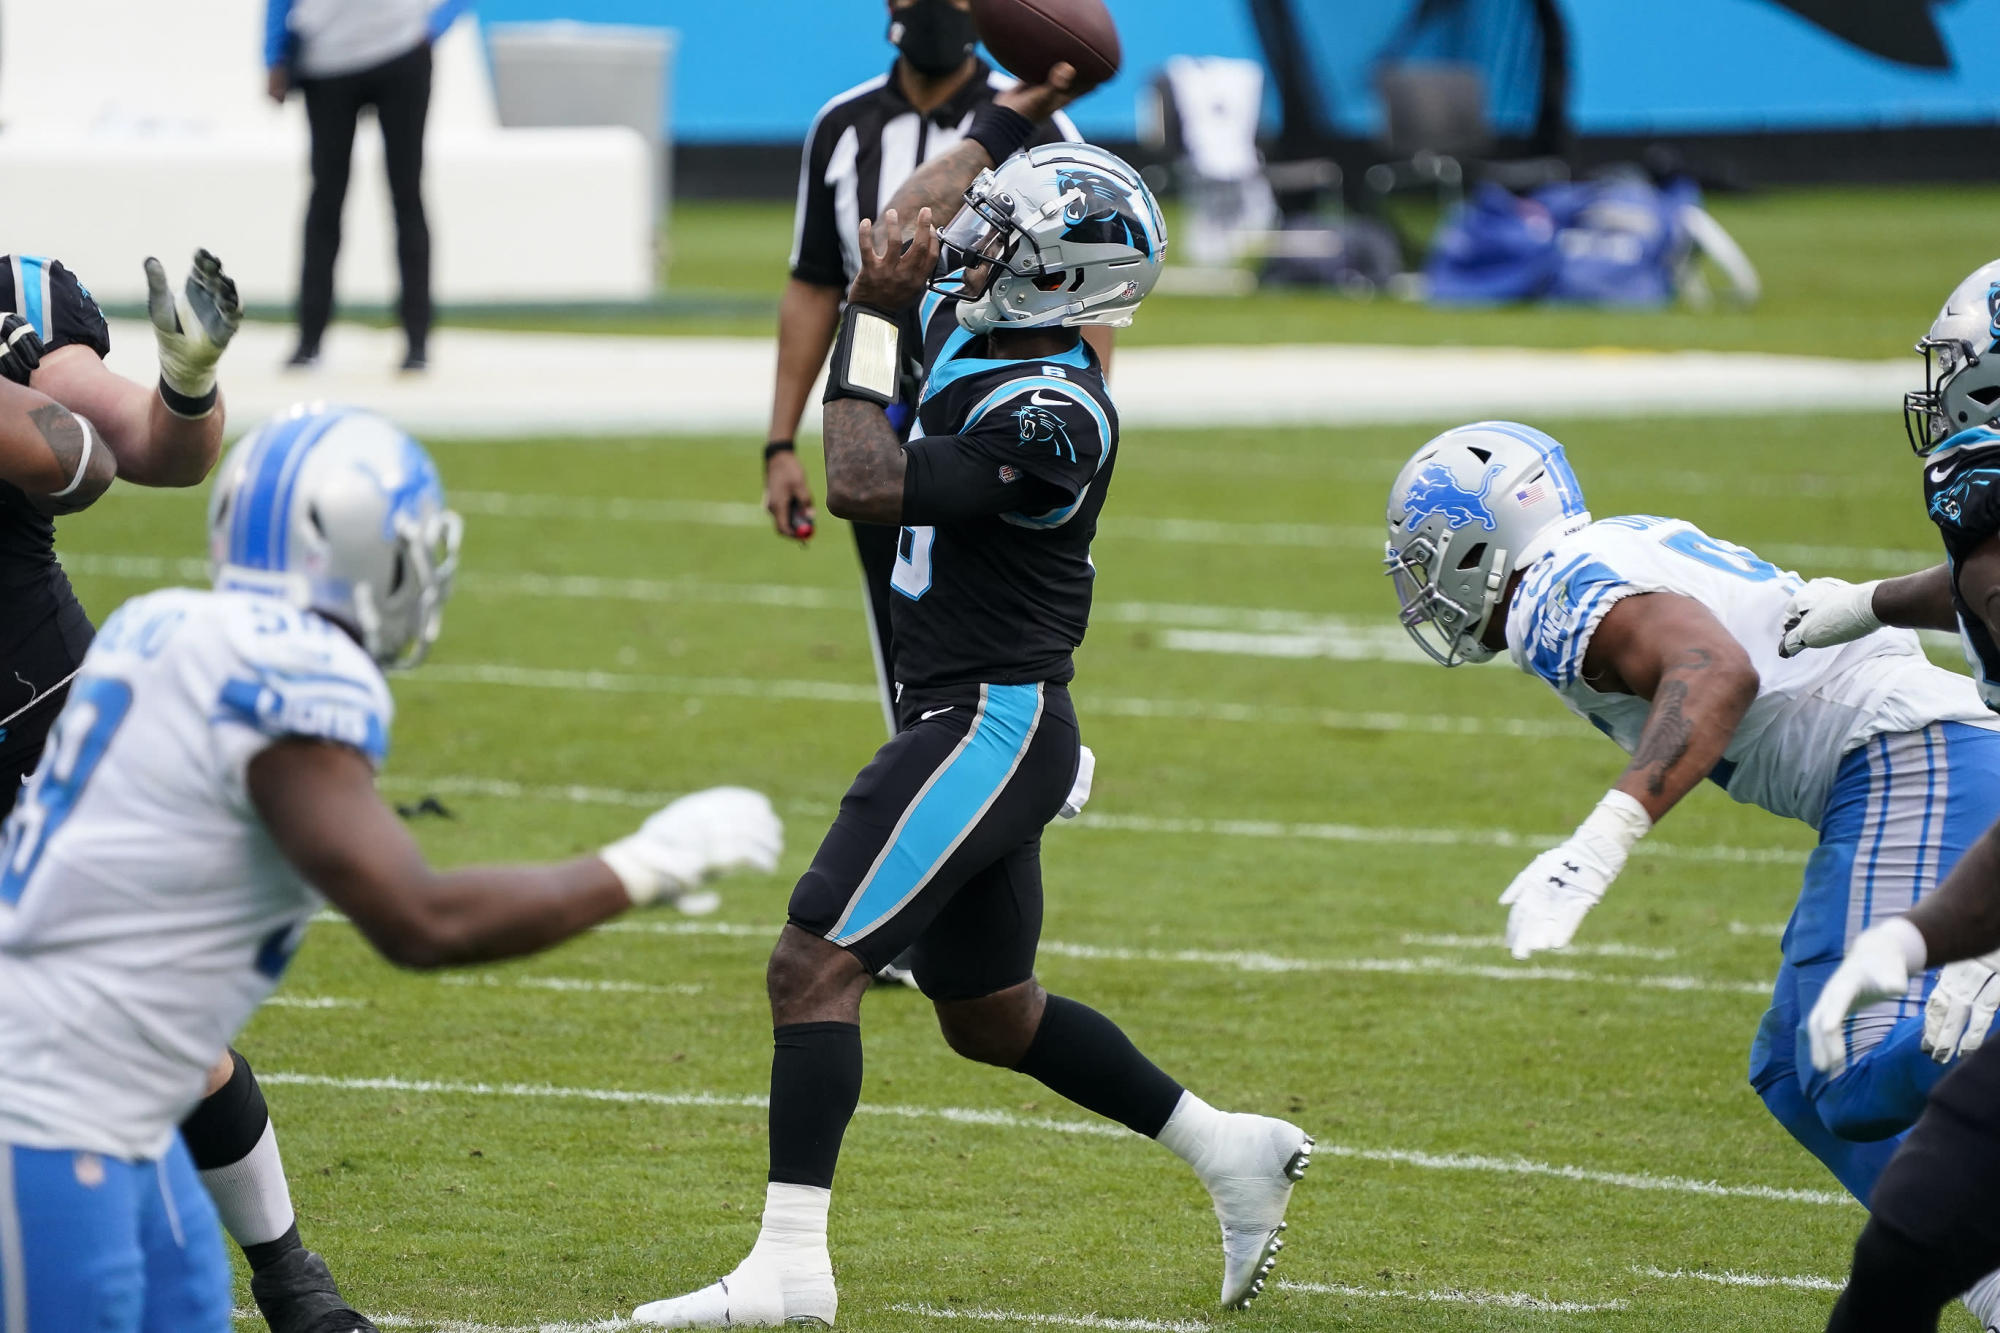 The spare Panthers QB PJ Walker is ranked at the bottom of the 2020 starter according to NFL.com